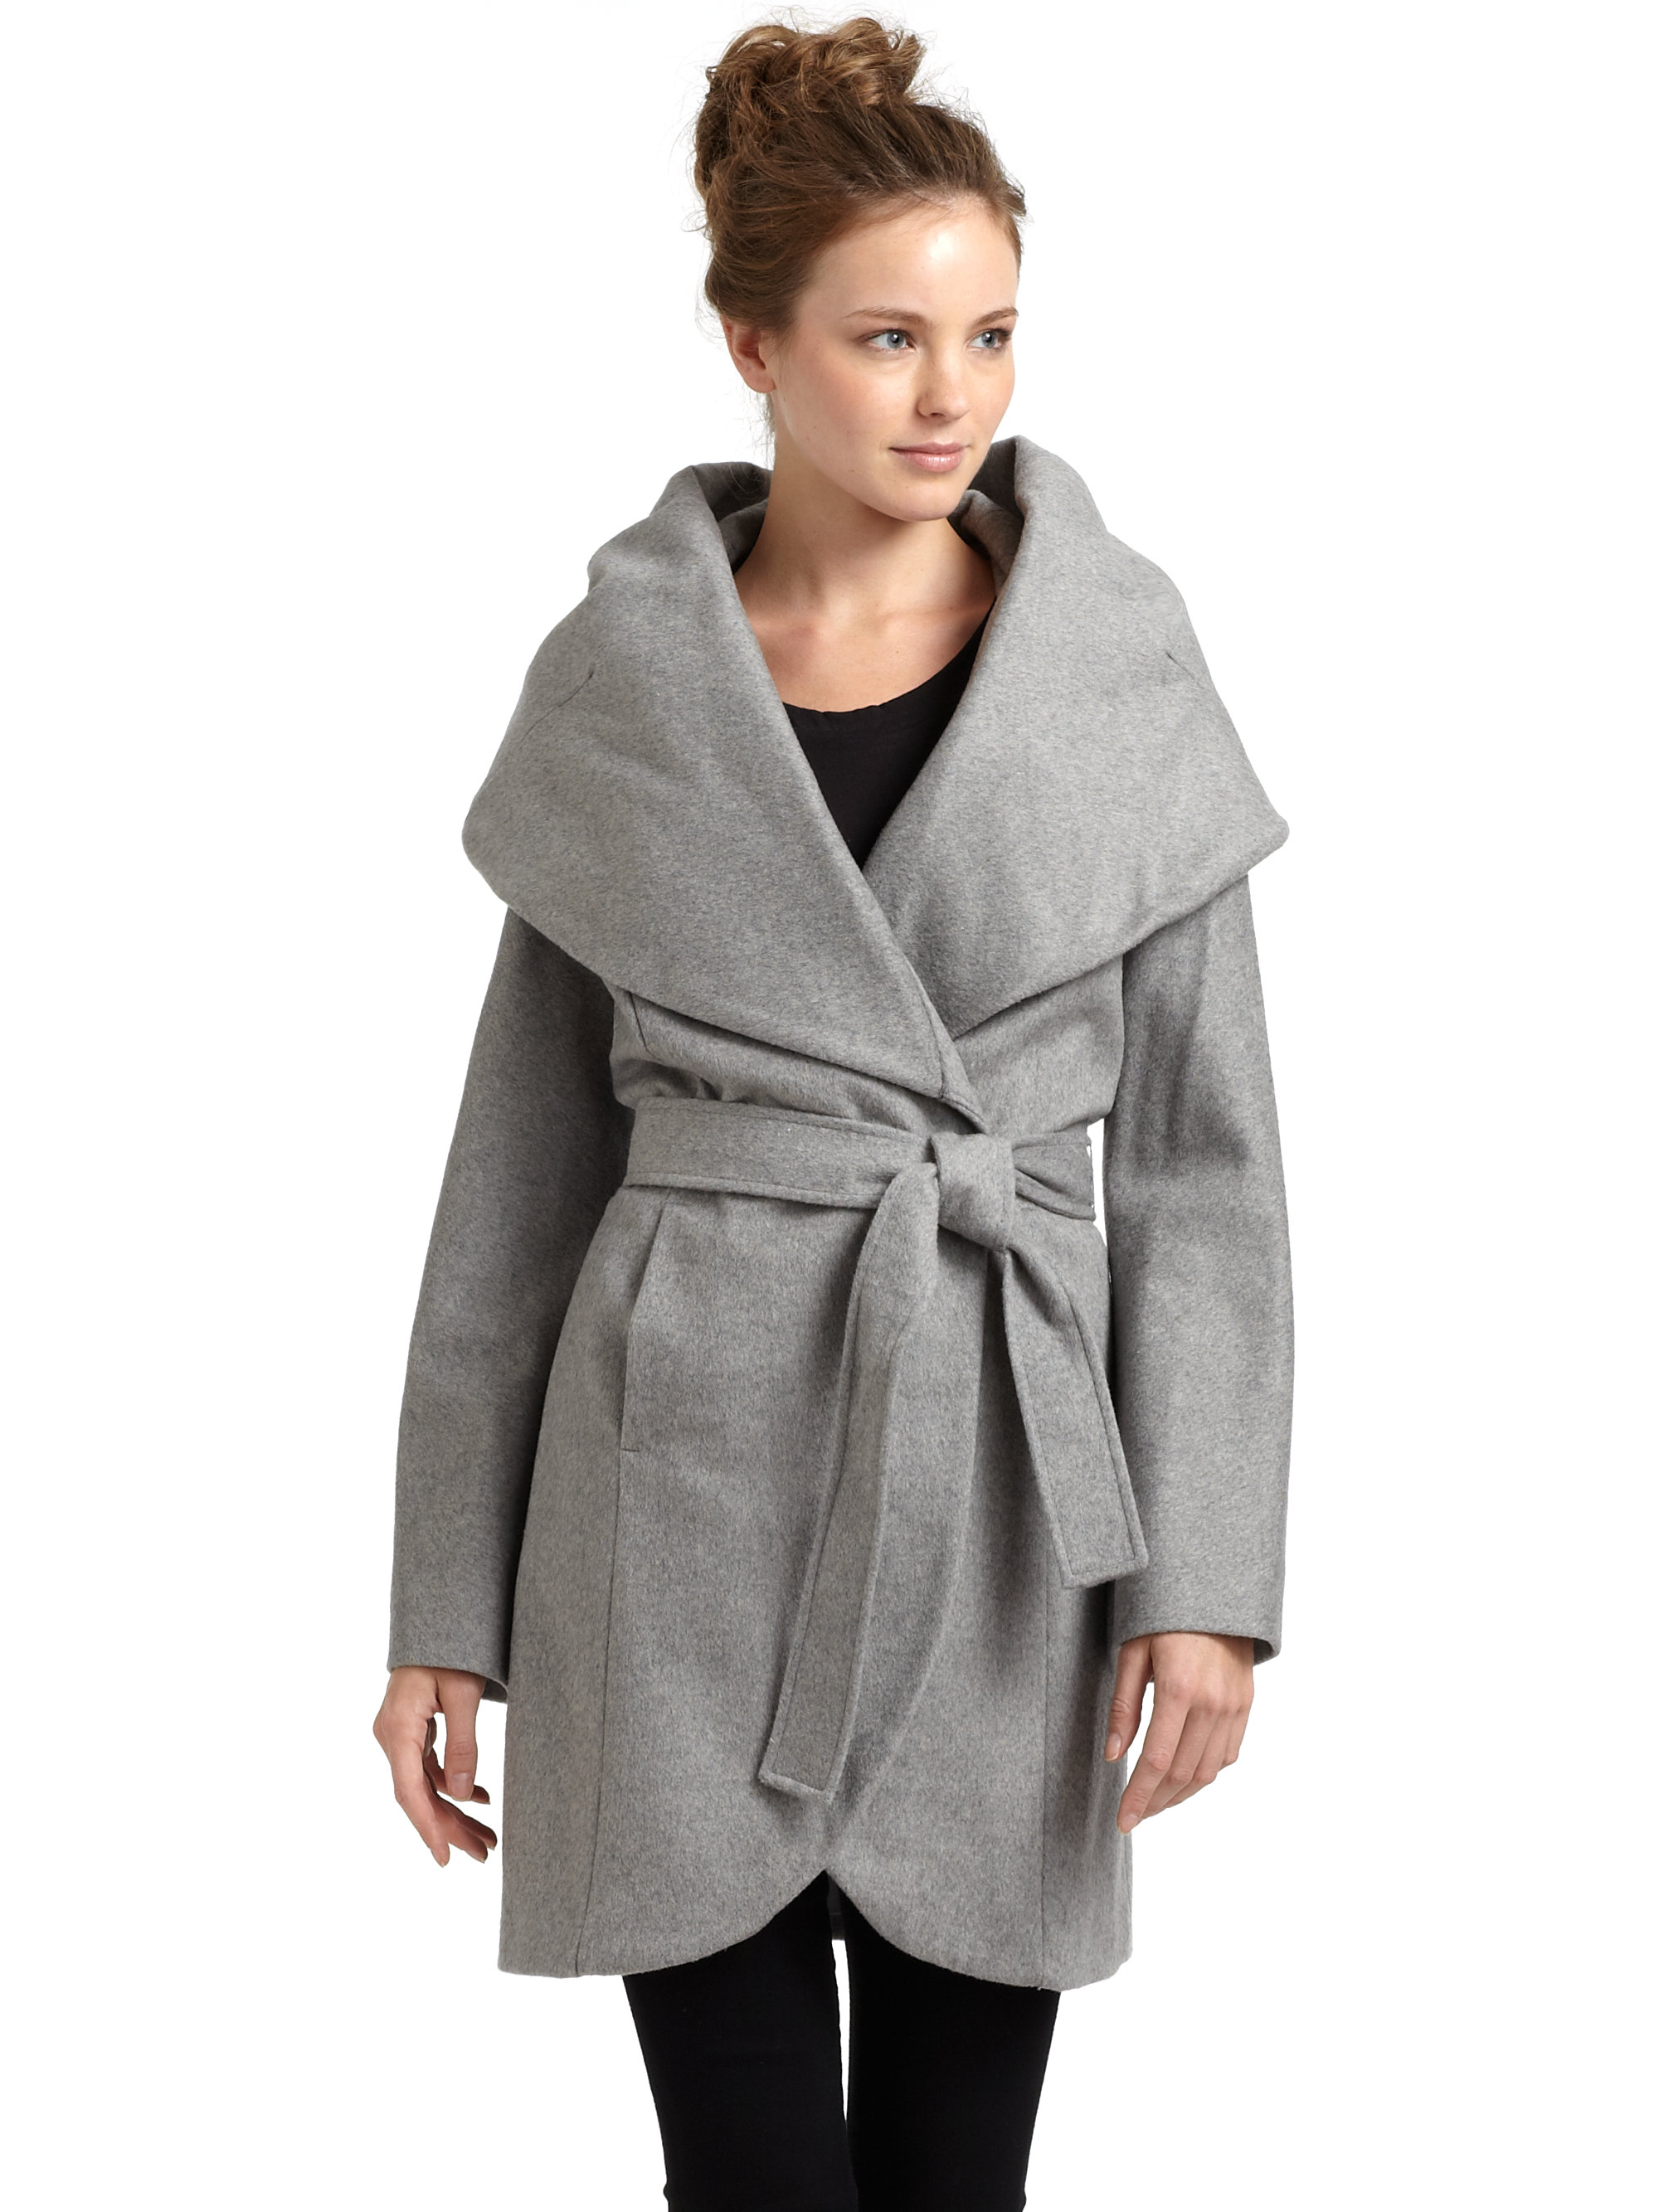 Shop the latest styles of Womens Wool & Wool Blend Coats at Macys. Check out our designer collection of chic coats including peacoats, trench coats, puffer coats and more! Macy's Presents: The Edit- A curated mix of fashion and inspiration Check It Out. I.N.C. Textured Wrap Coat.